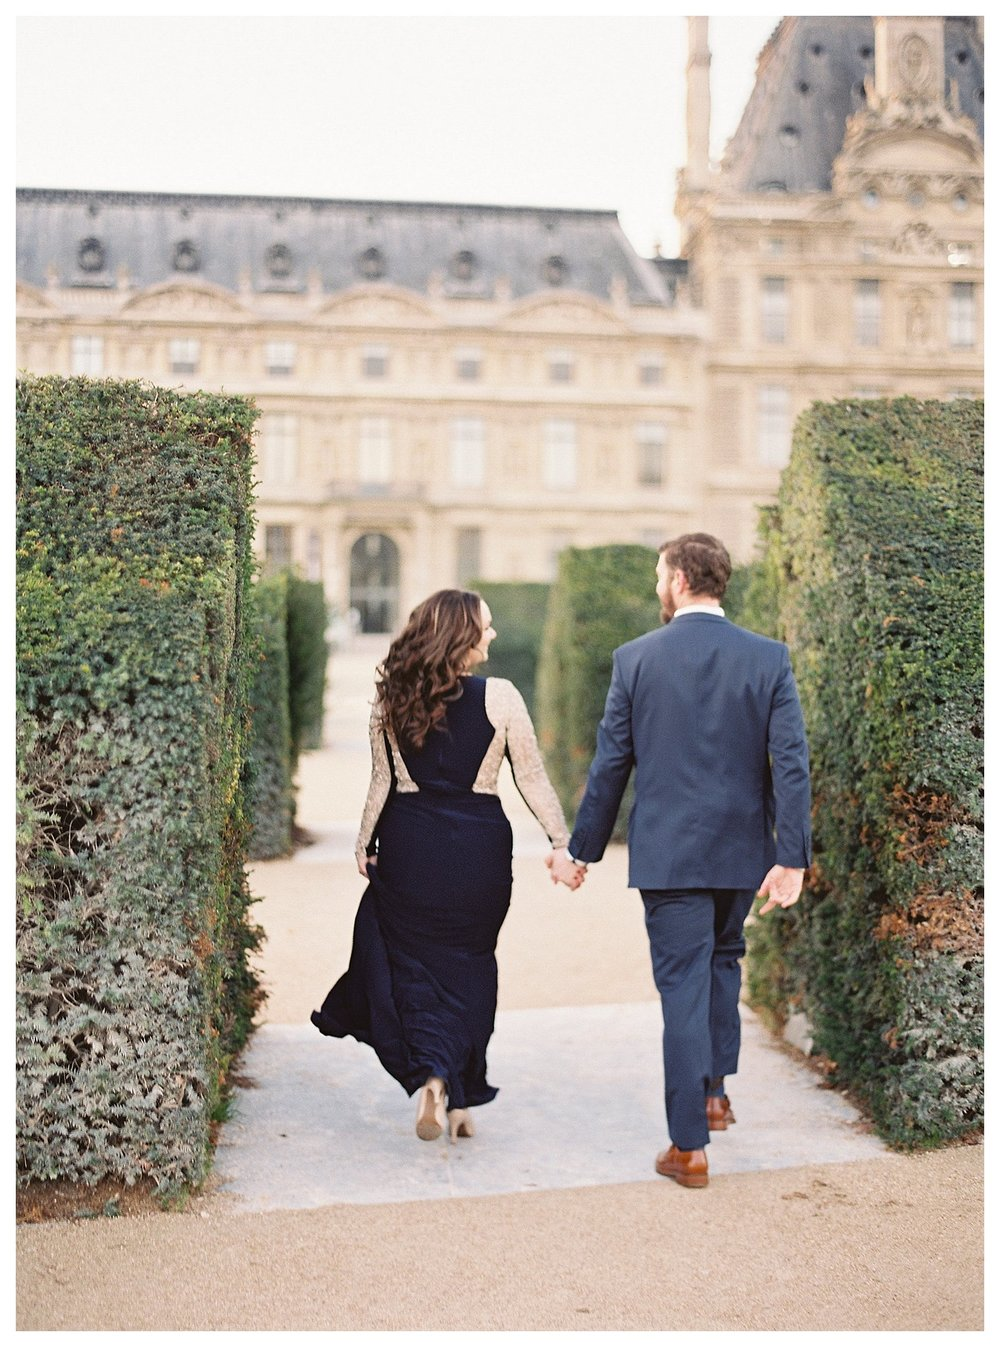 Paris Engagement Photographer | Andrea Rodway Photography